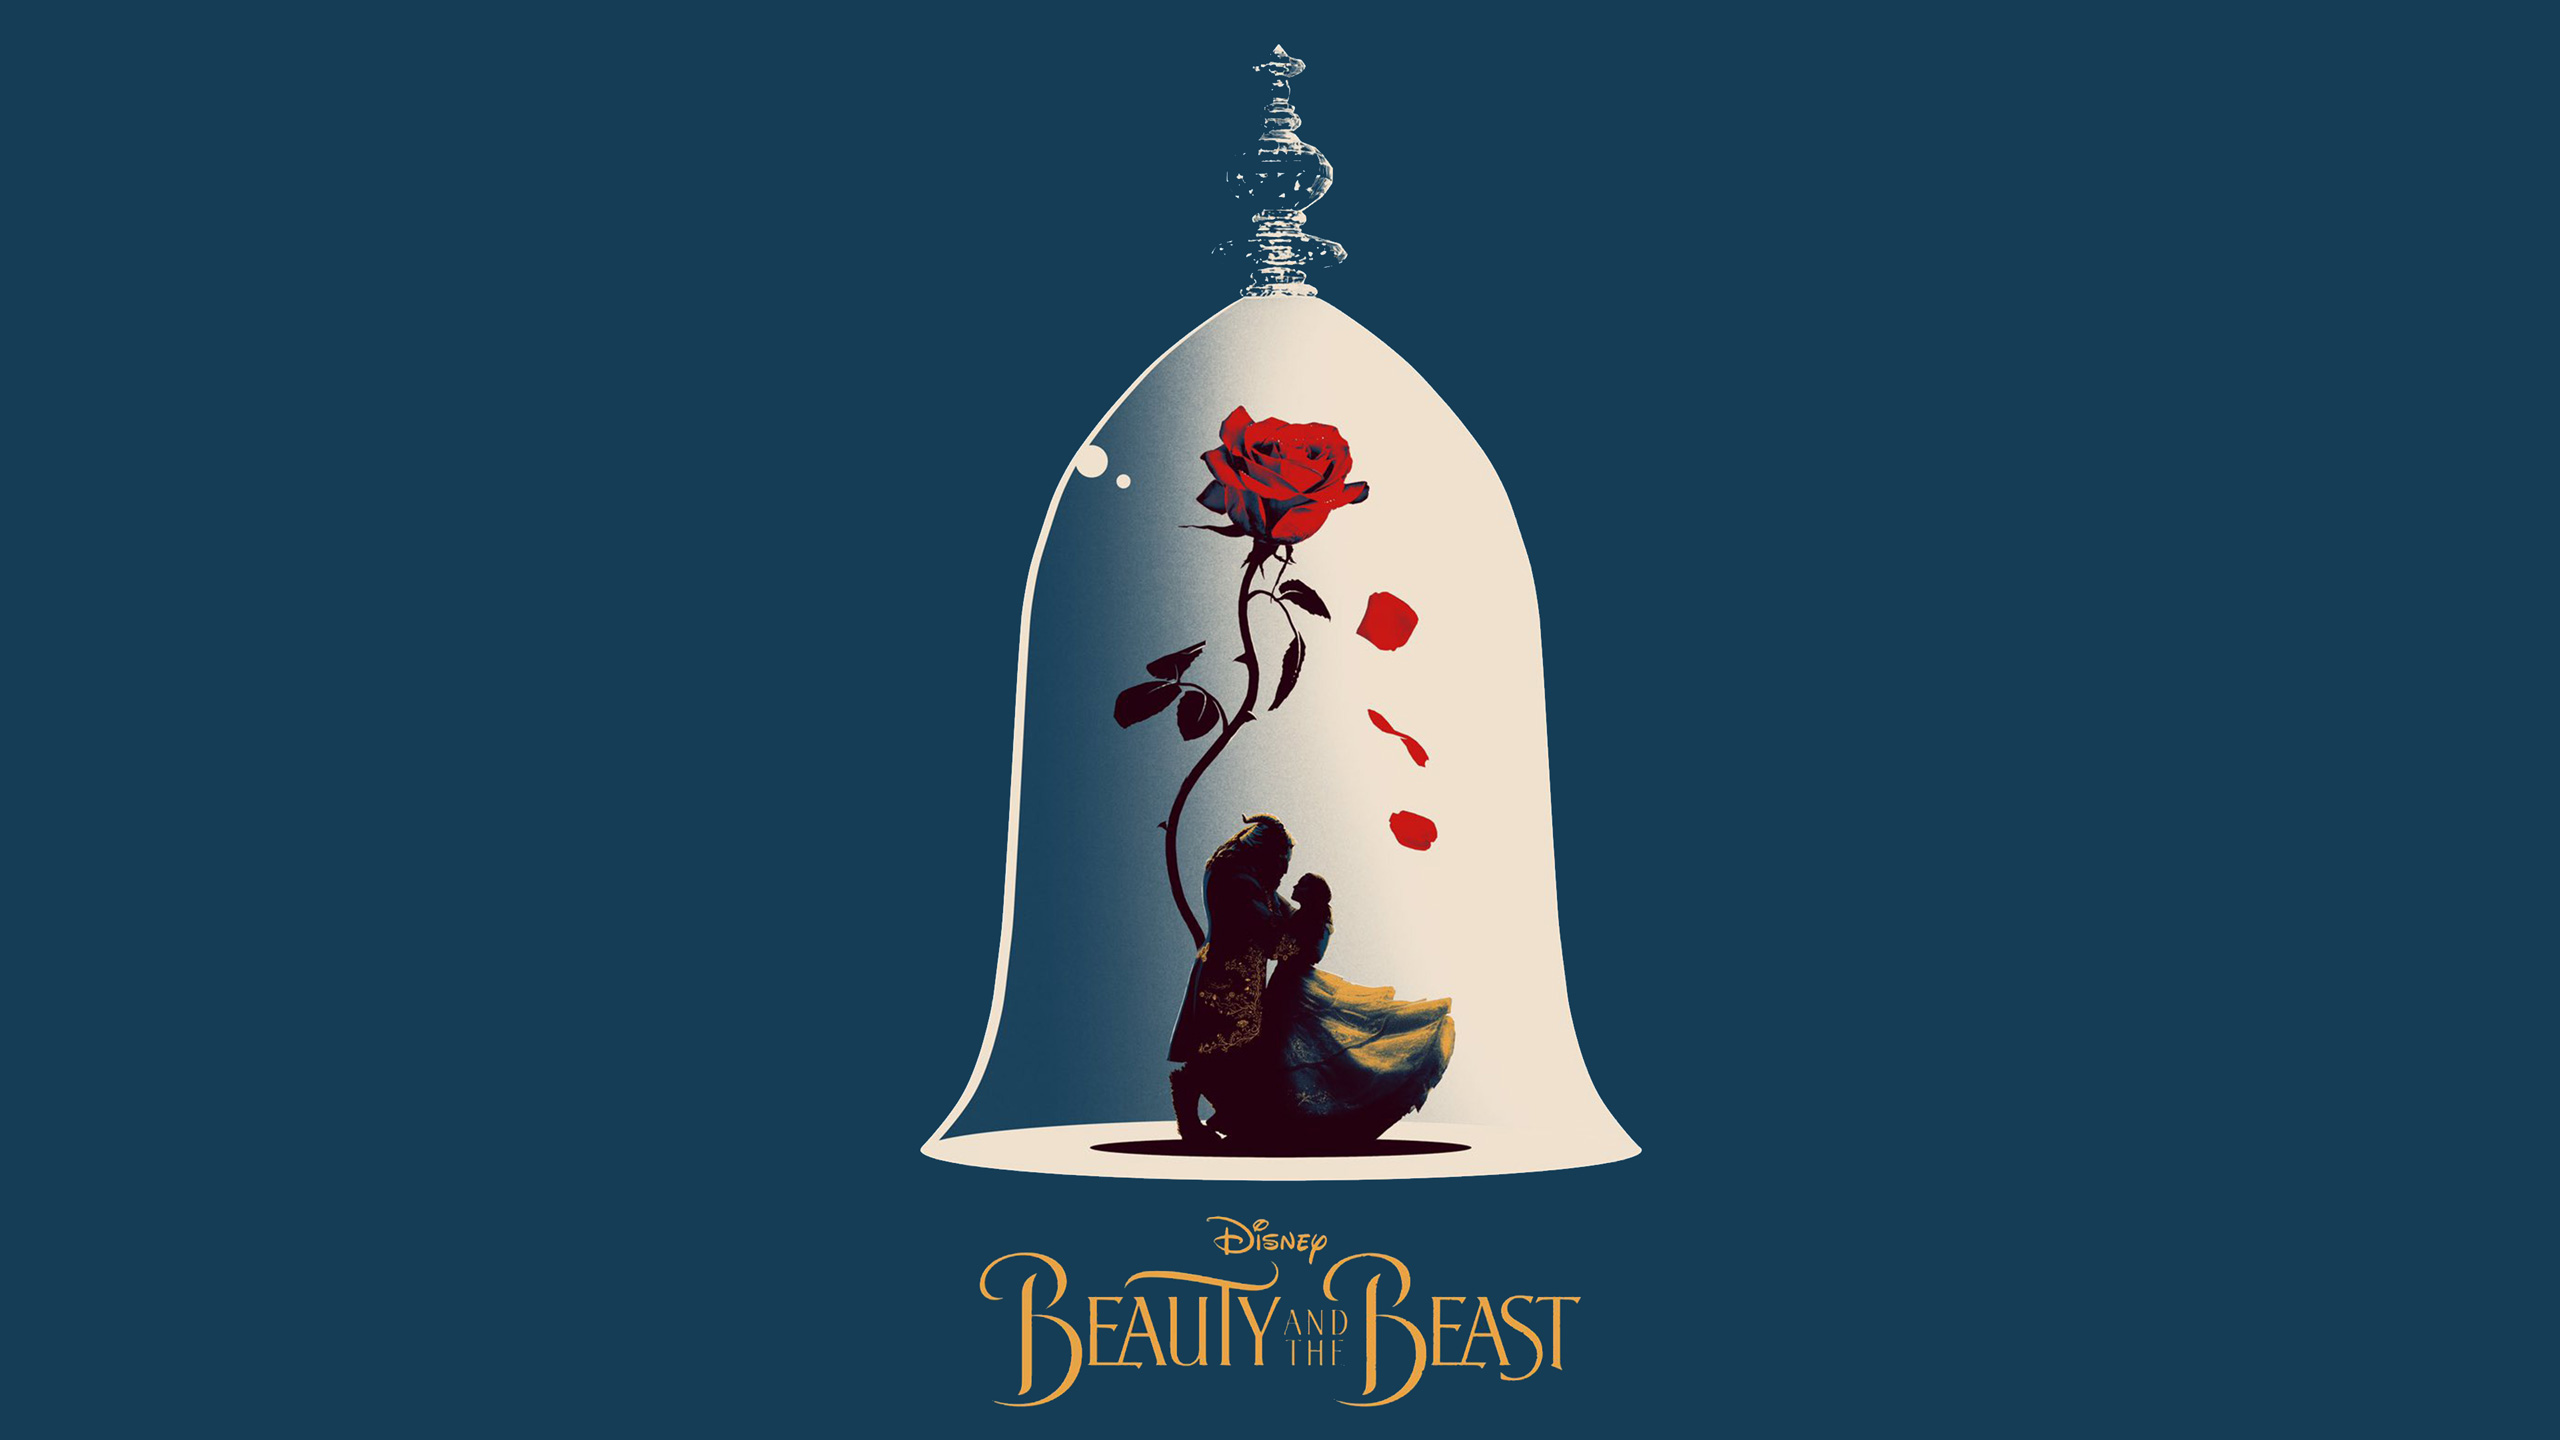 Beauty And The Beast Artwork   Beauty And The Beast Iphone 2560x1440